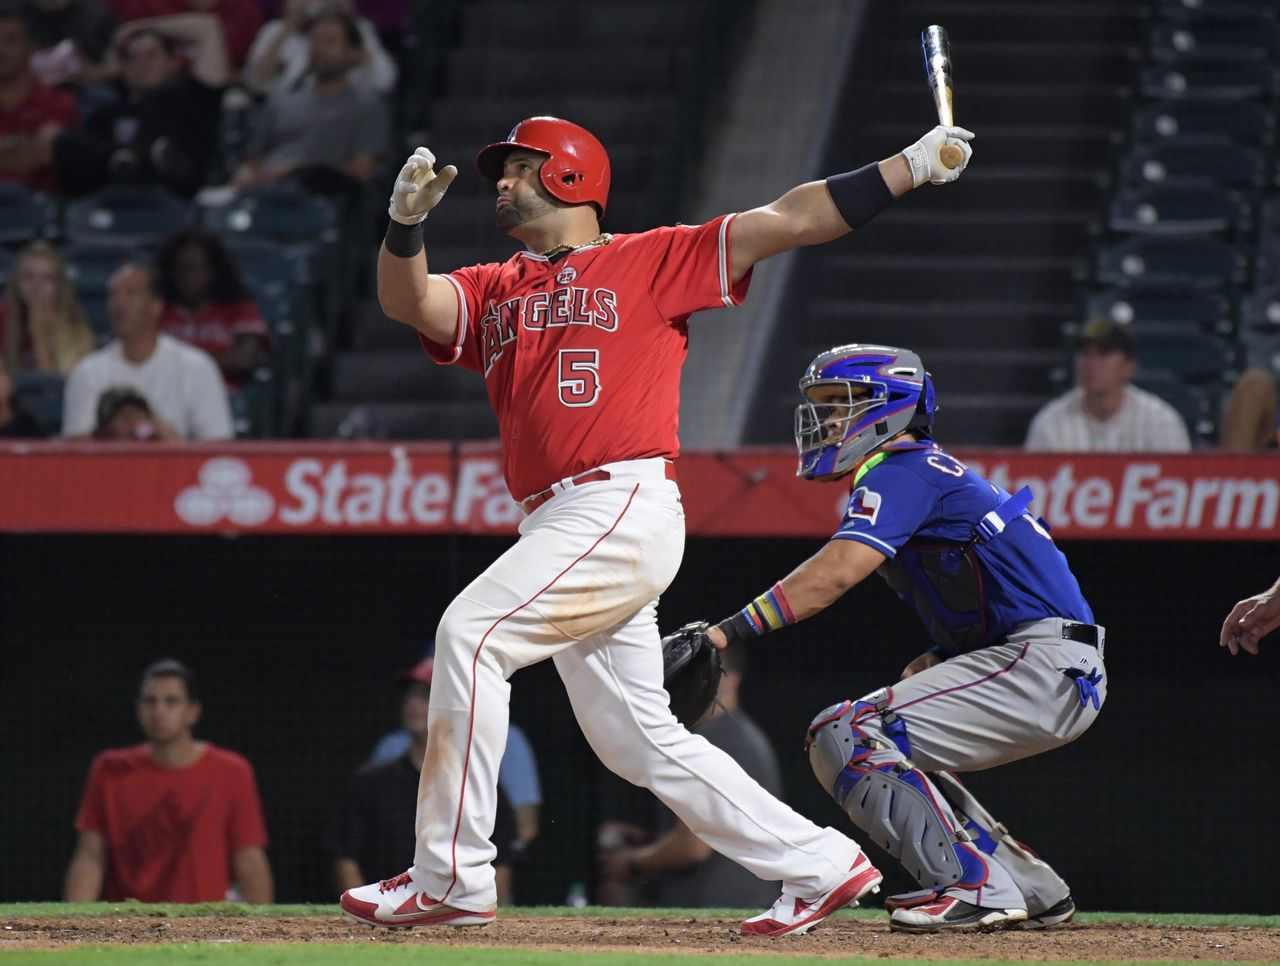 Cropped_2017-08-23t060612z_878453219_nocid_rtrmadp_3_mlb-texas-rangers-at-los-angeles-angels